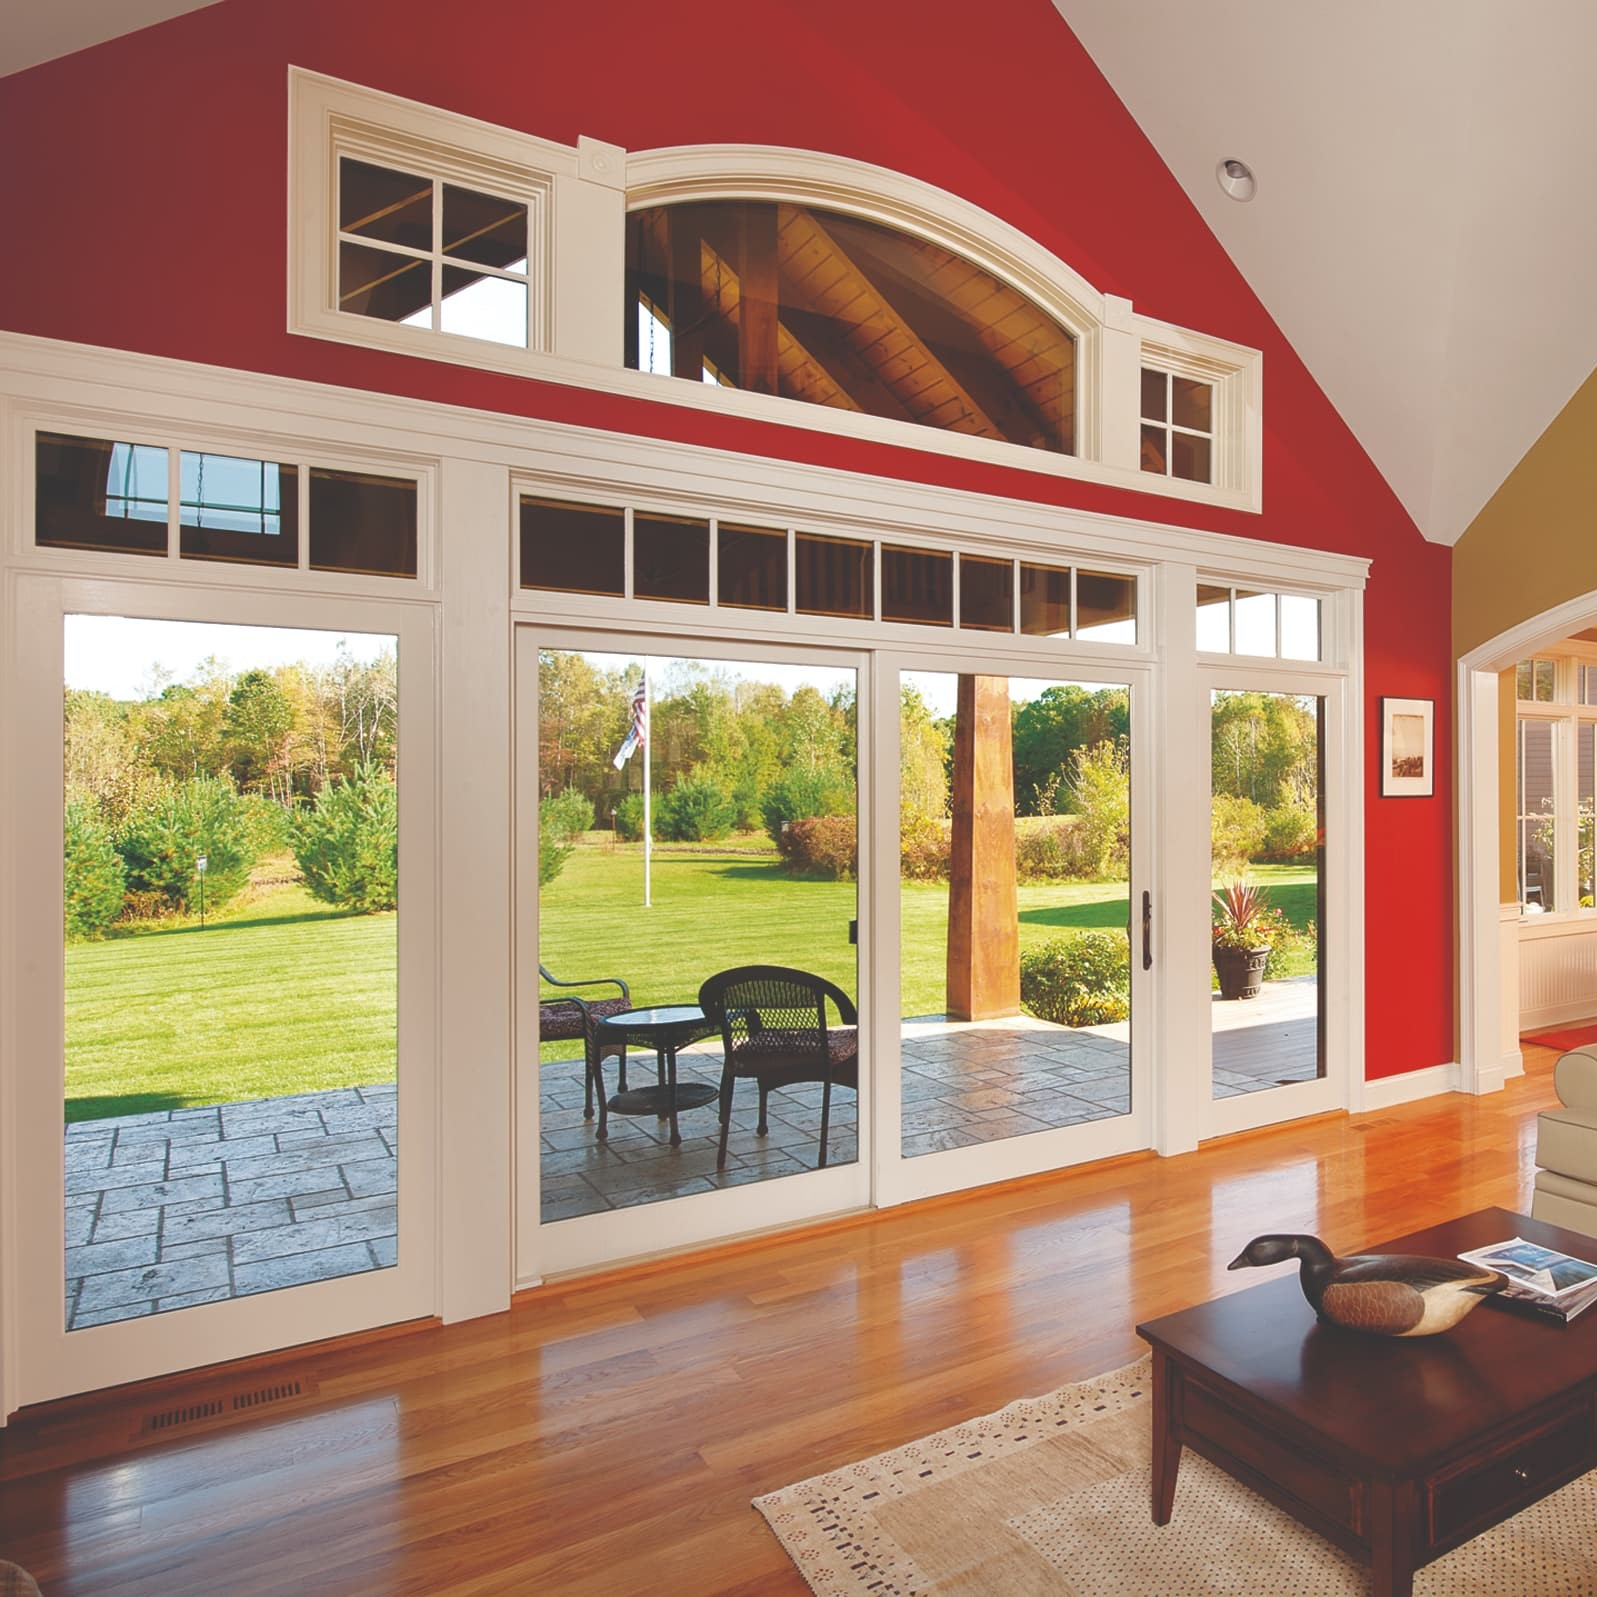 Sliding patio door in barn-style house